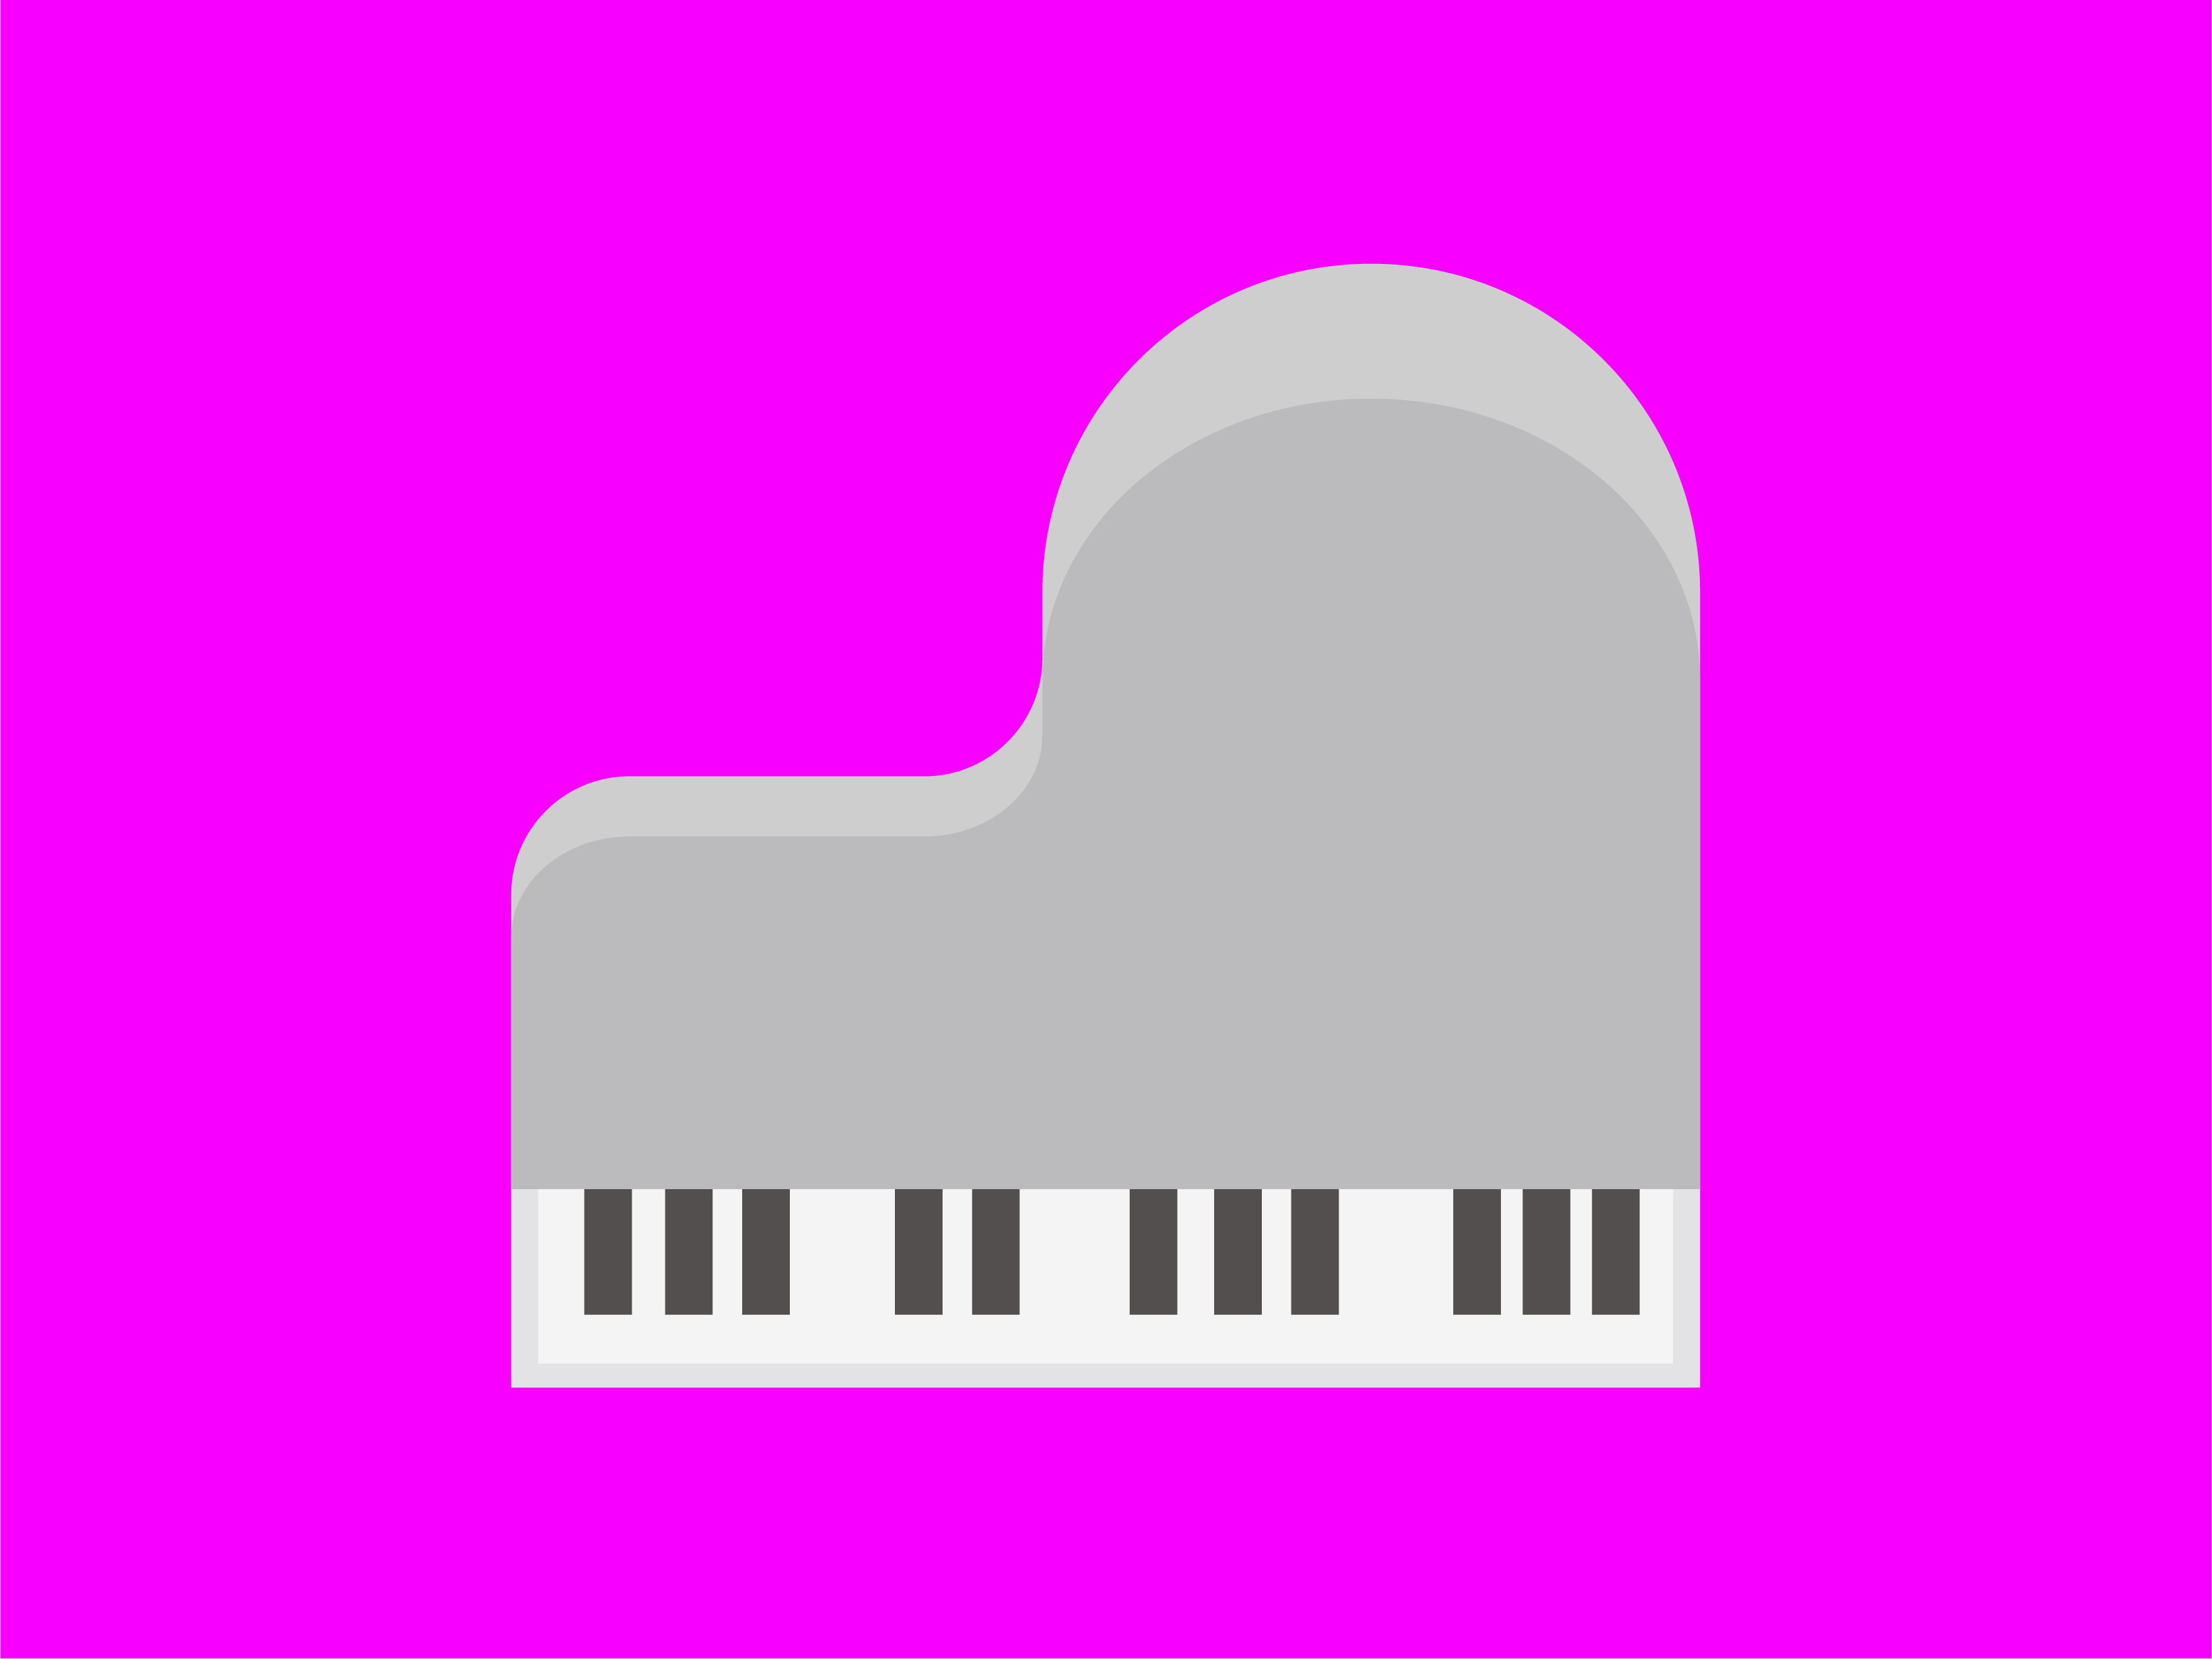 Download Free Icon Big Piano Graphic By Meandmydate Creative Fabrica for Cricut Explore, Silhouette and other cutting machines.